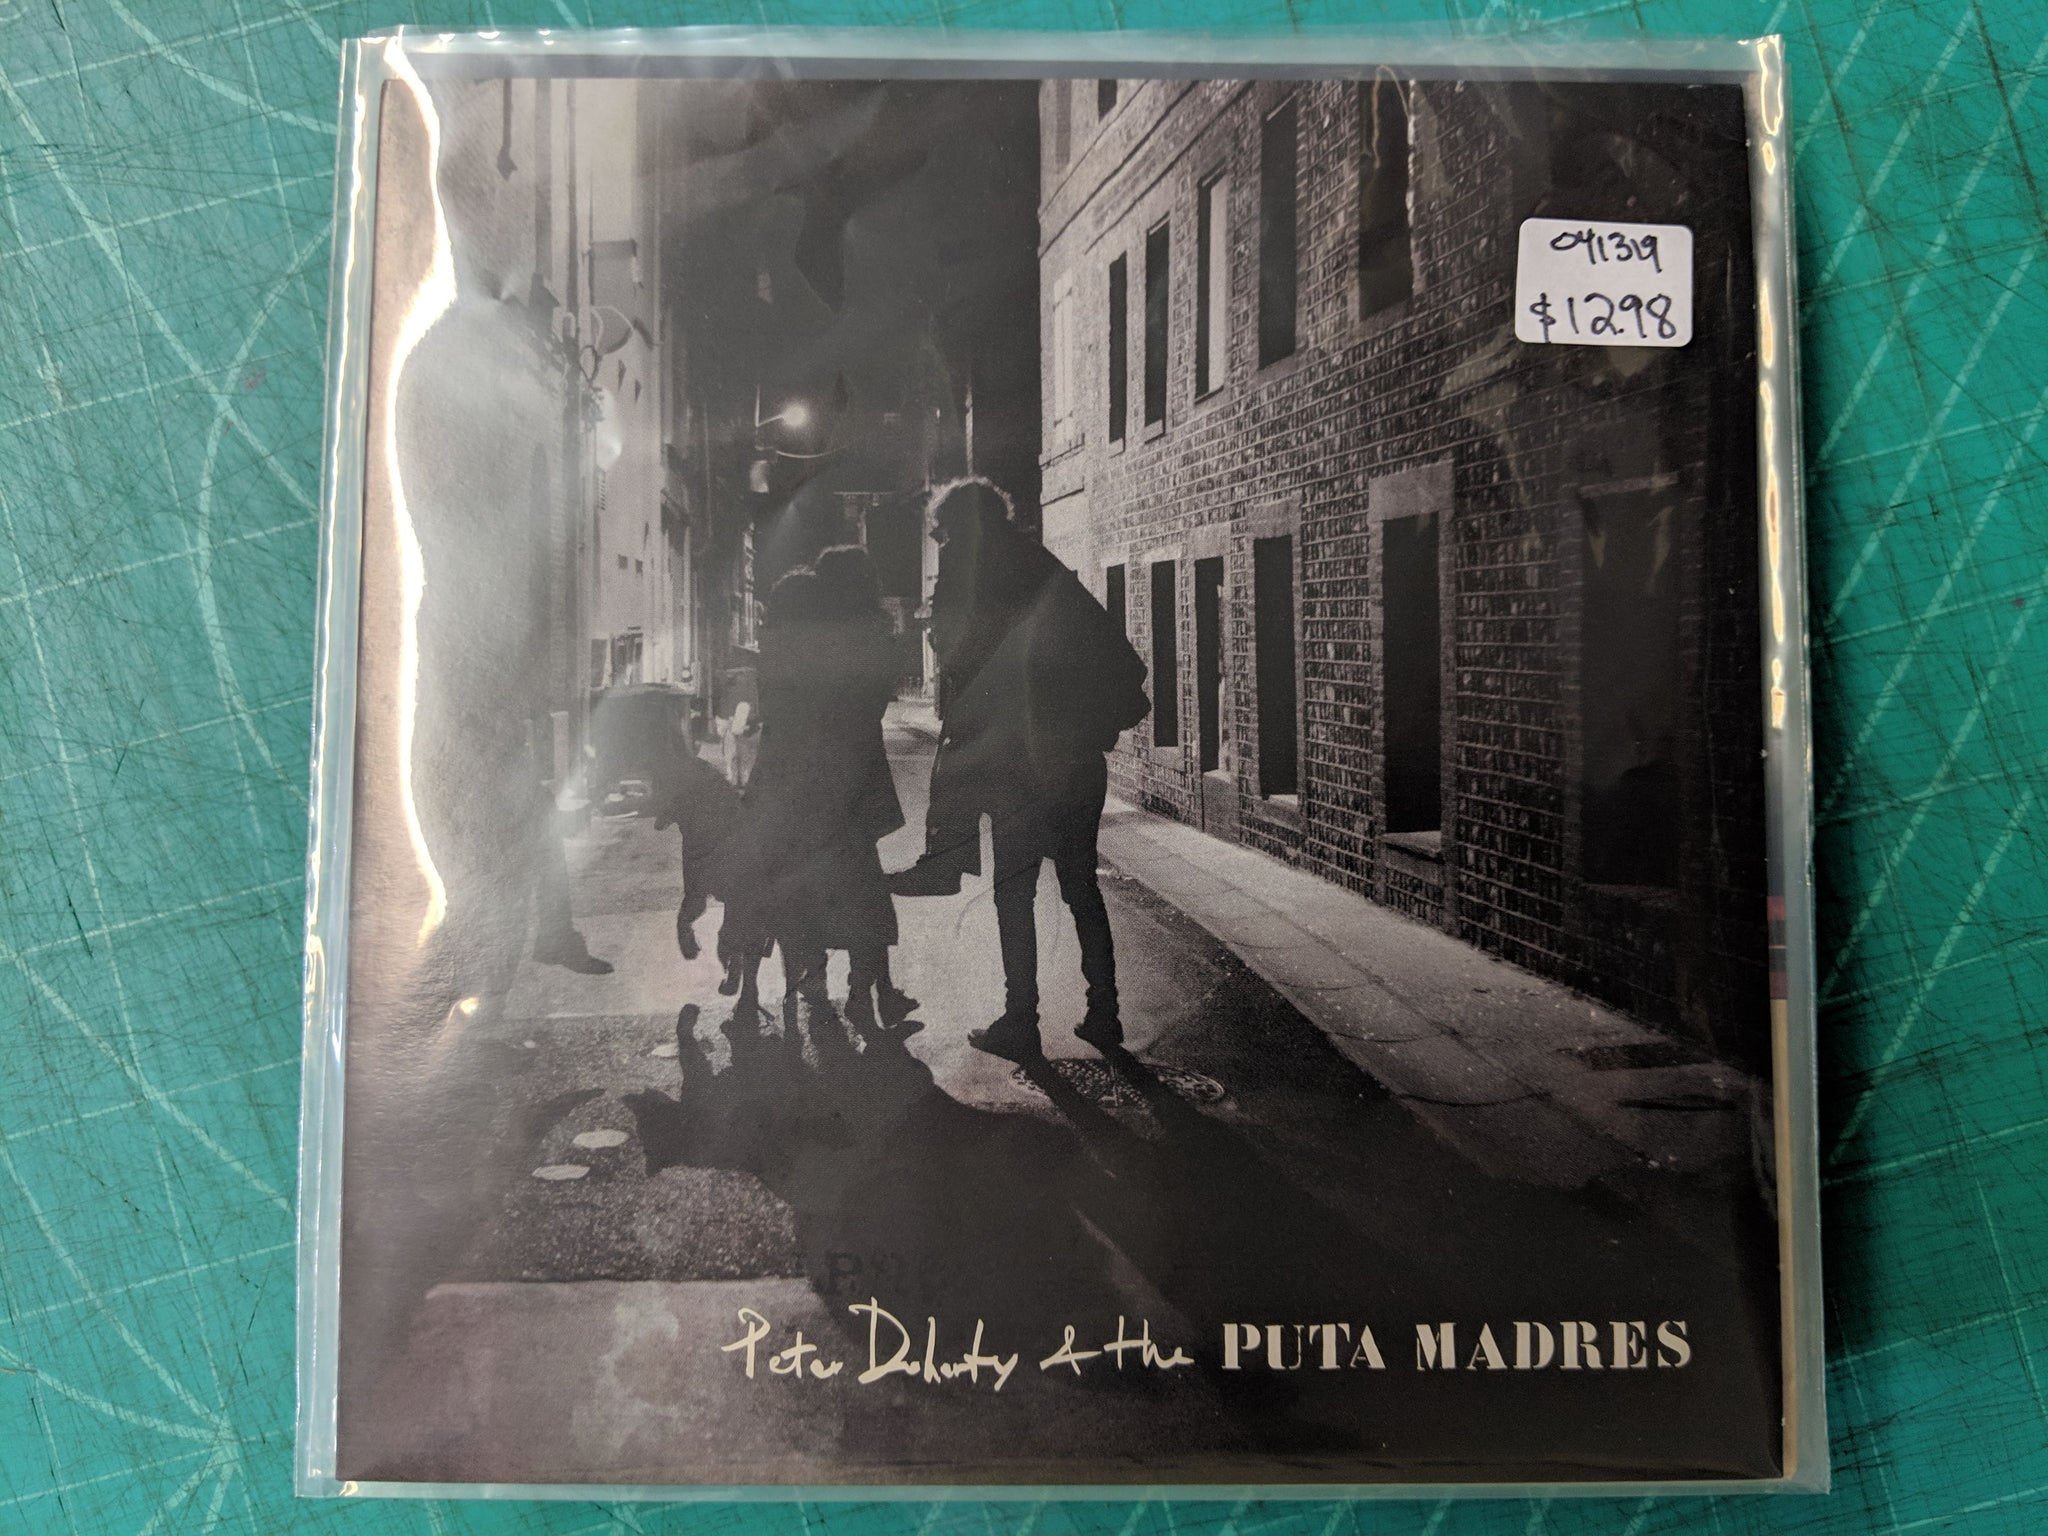 Pete Doherty & the Puta Madres 7""